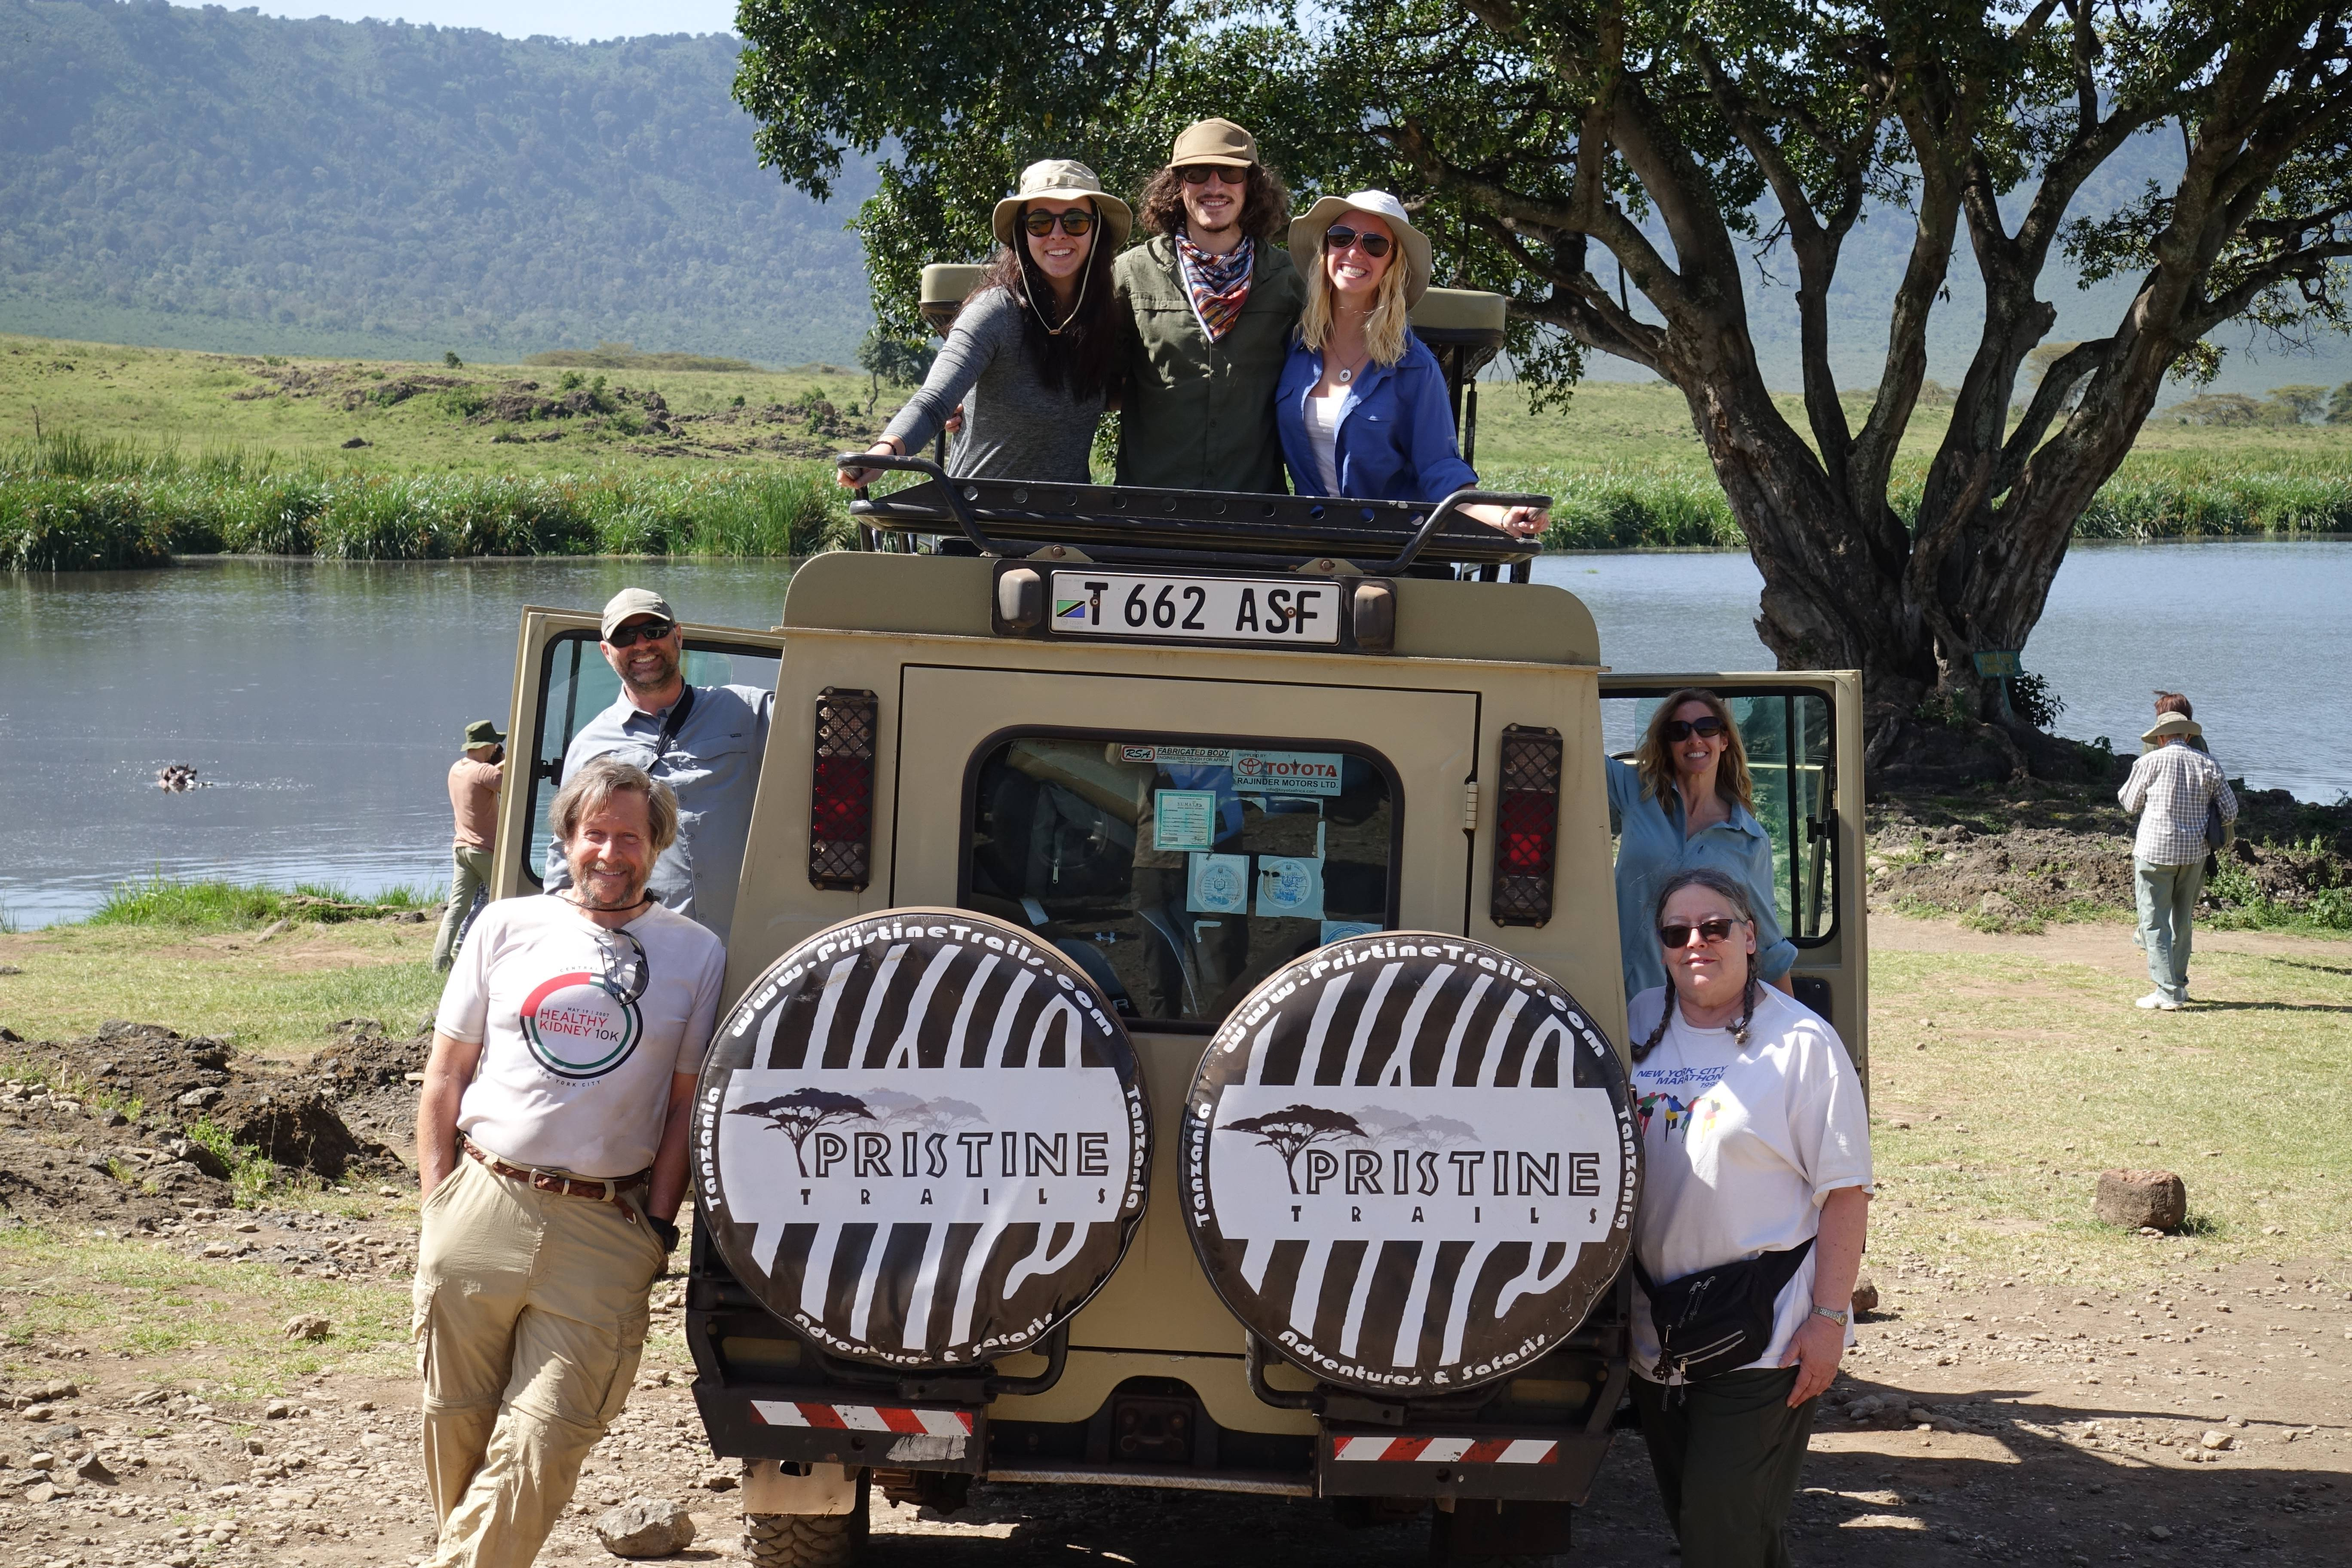 Spend a day in the Ngorongoro Crater and get ready for a thrill! From fighting lions to baby animals, the crater is a must. Our week with Pristine Trails couldn't have gone more smoothly, and we're so grateful for the memories of our time in Tanzania. Read more at thefivefoottraveler.com